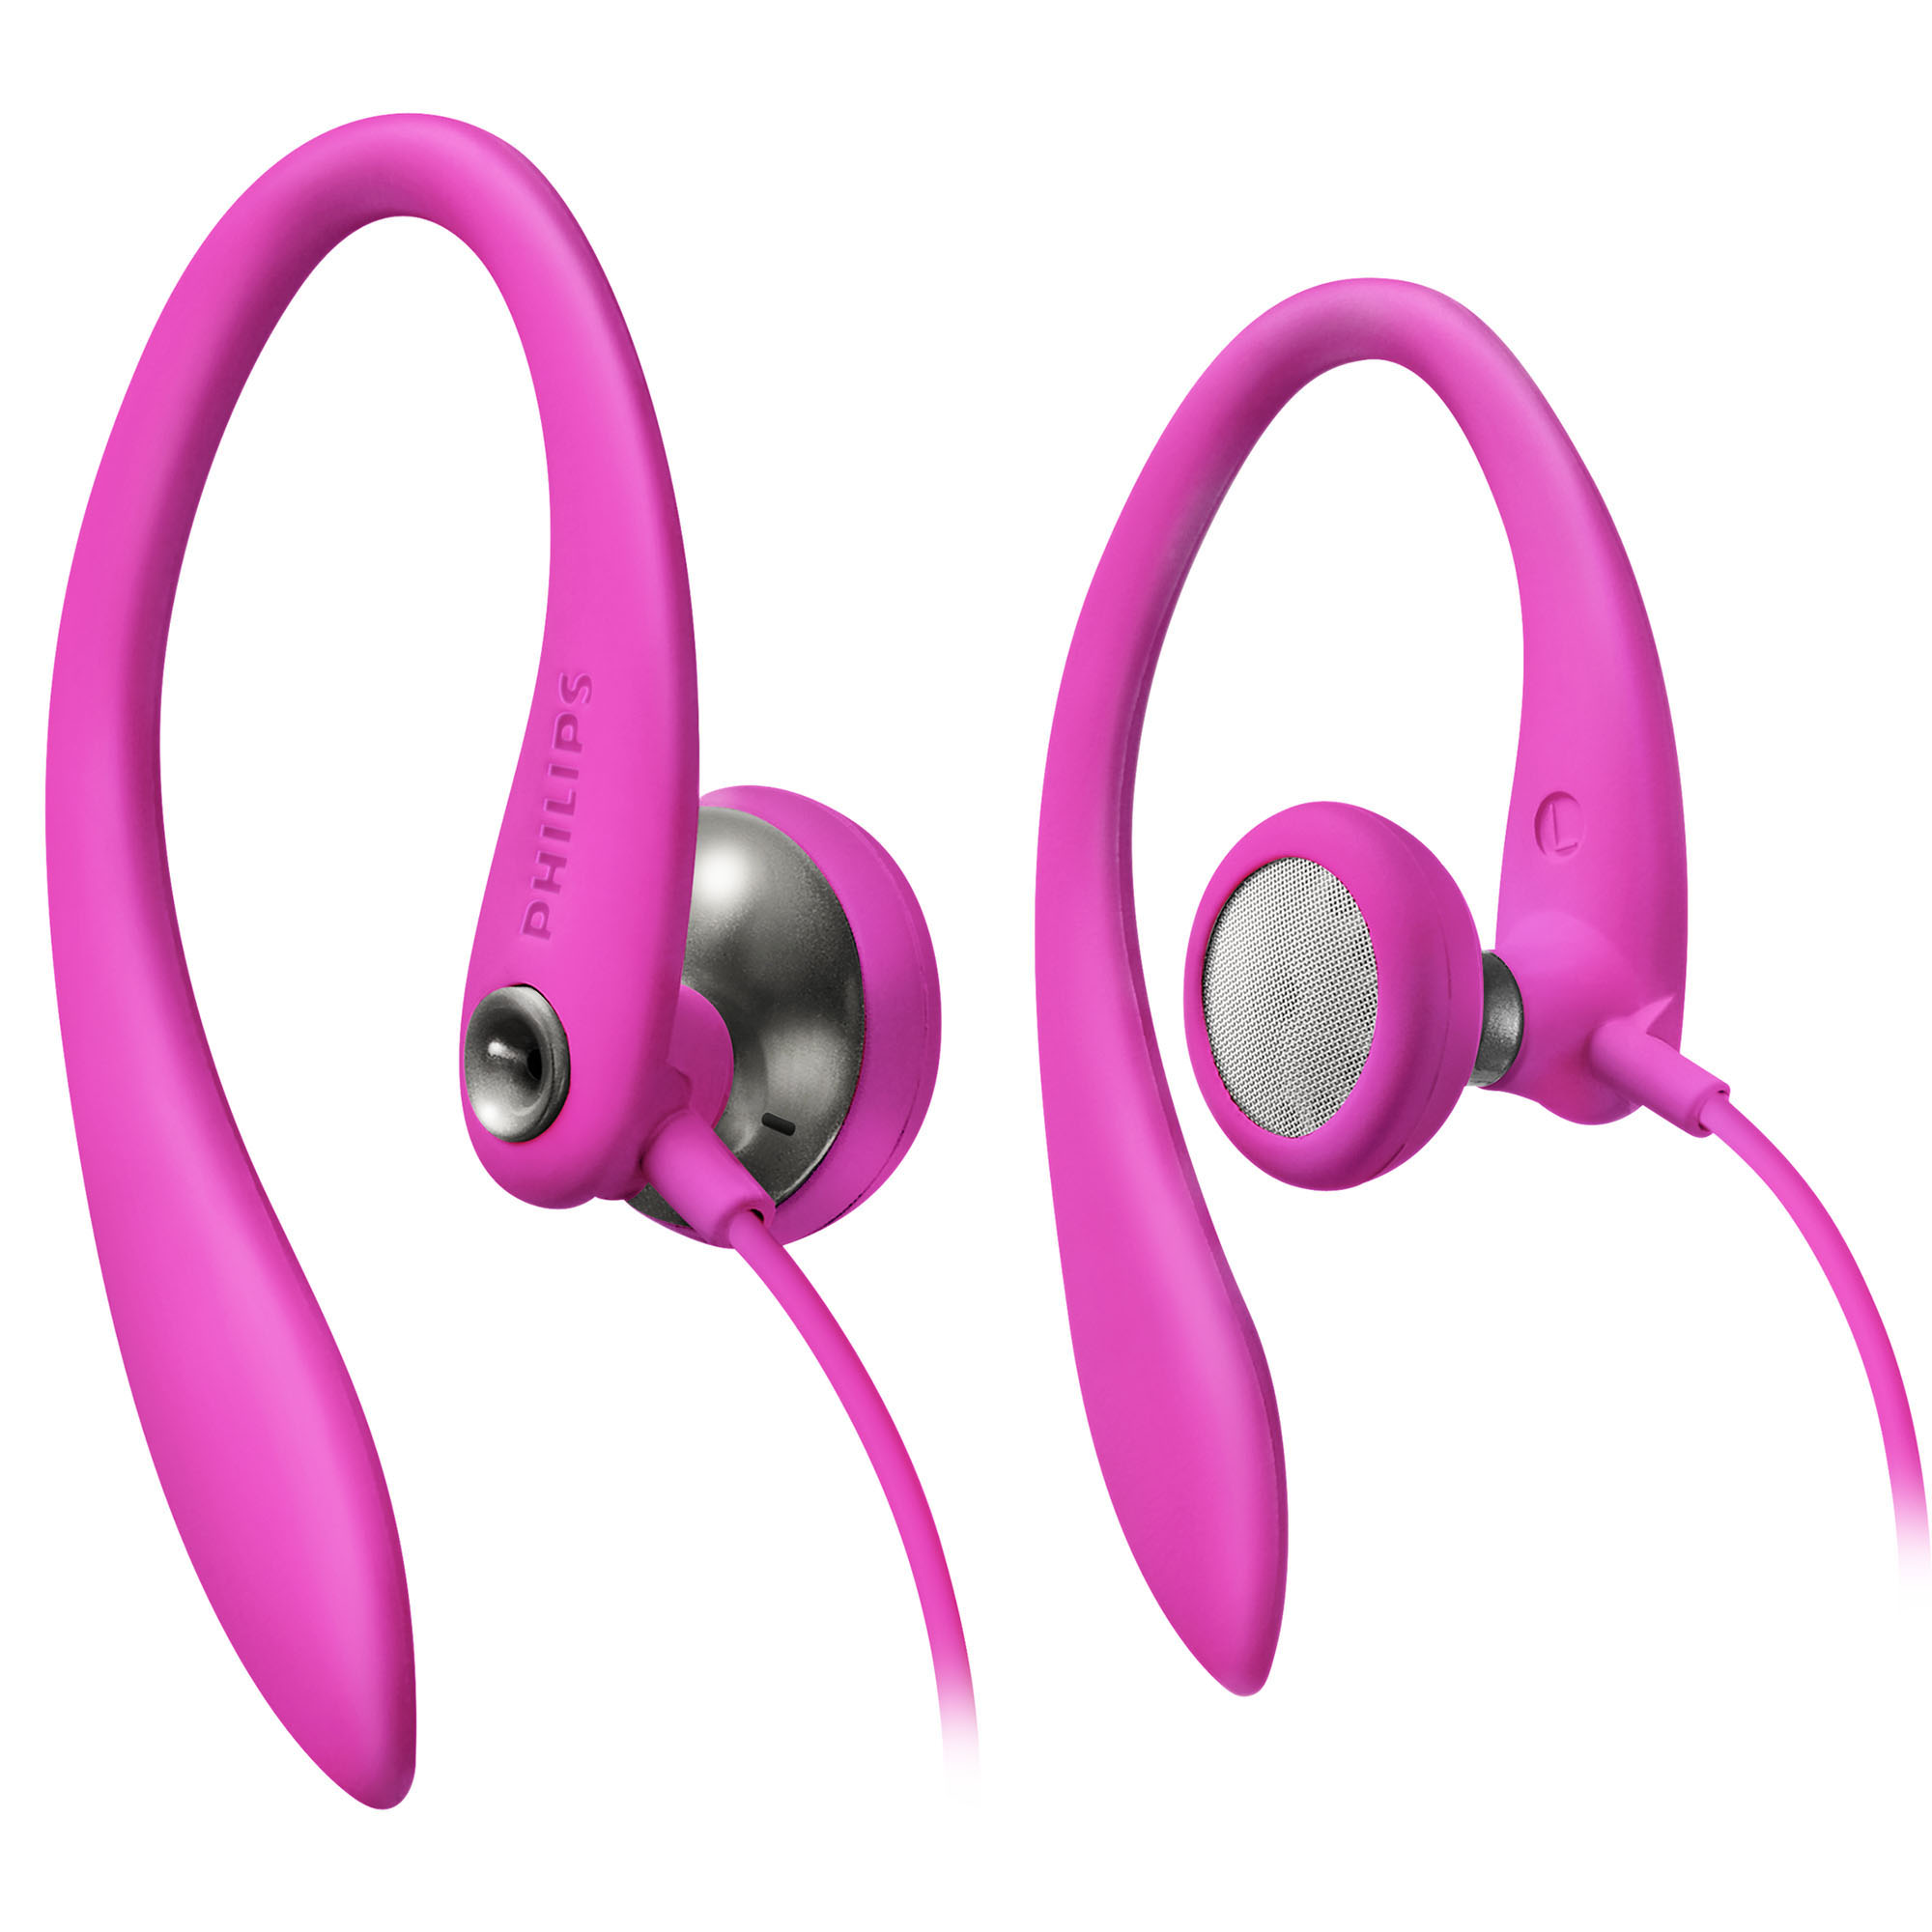 Philips Earhook Headphones, Pink